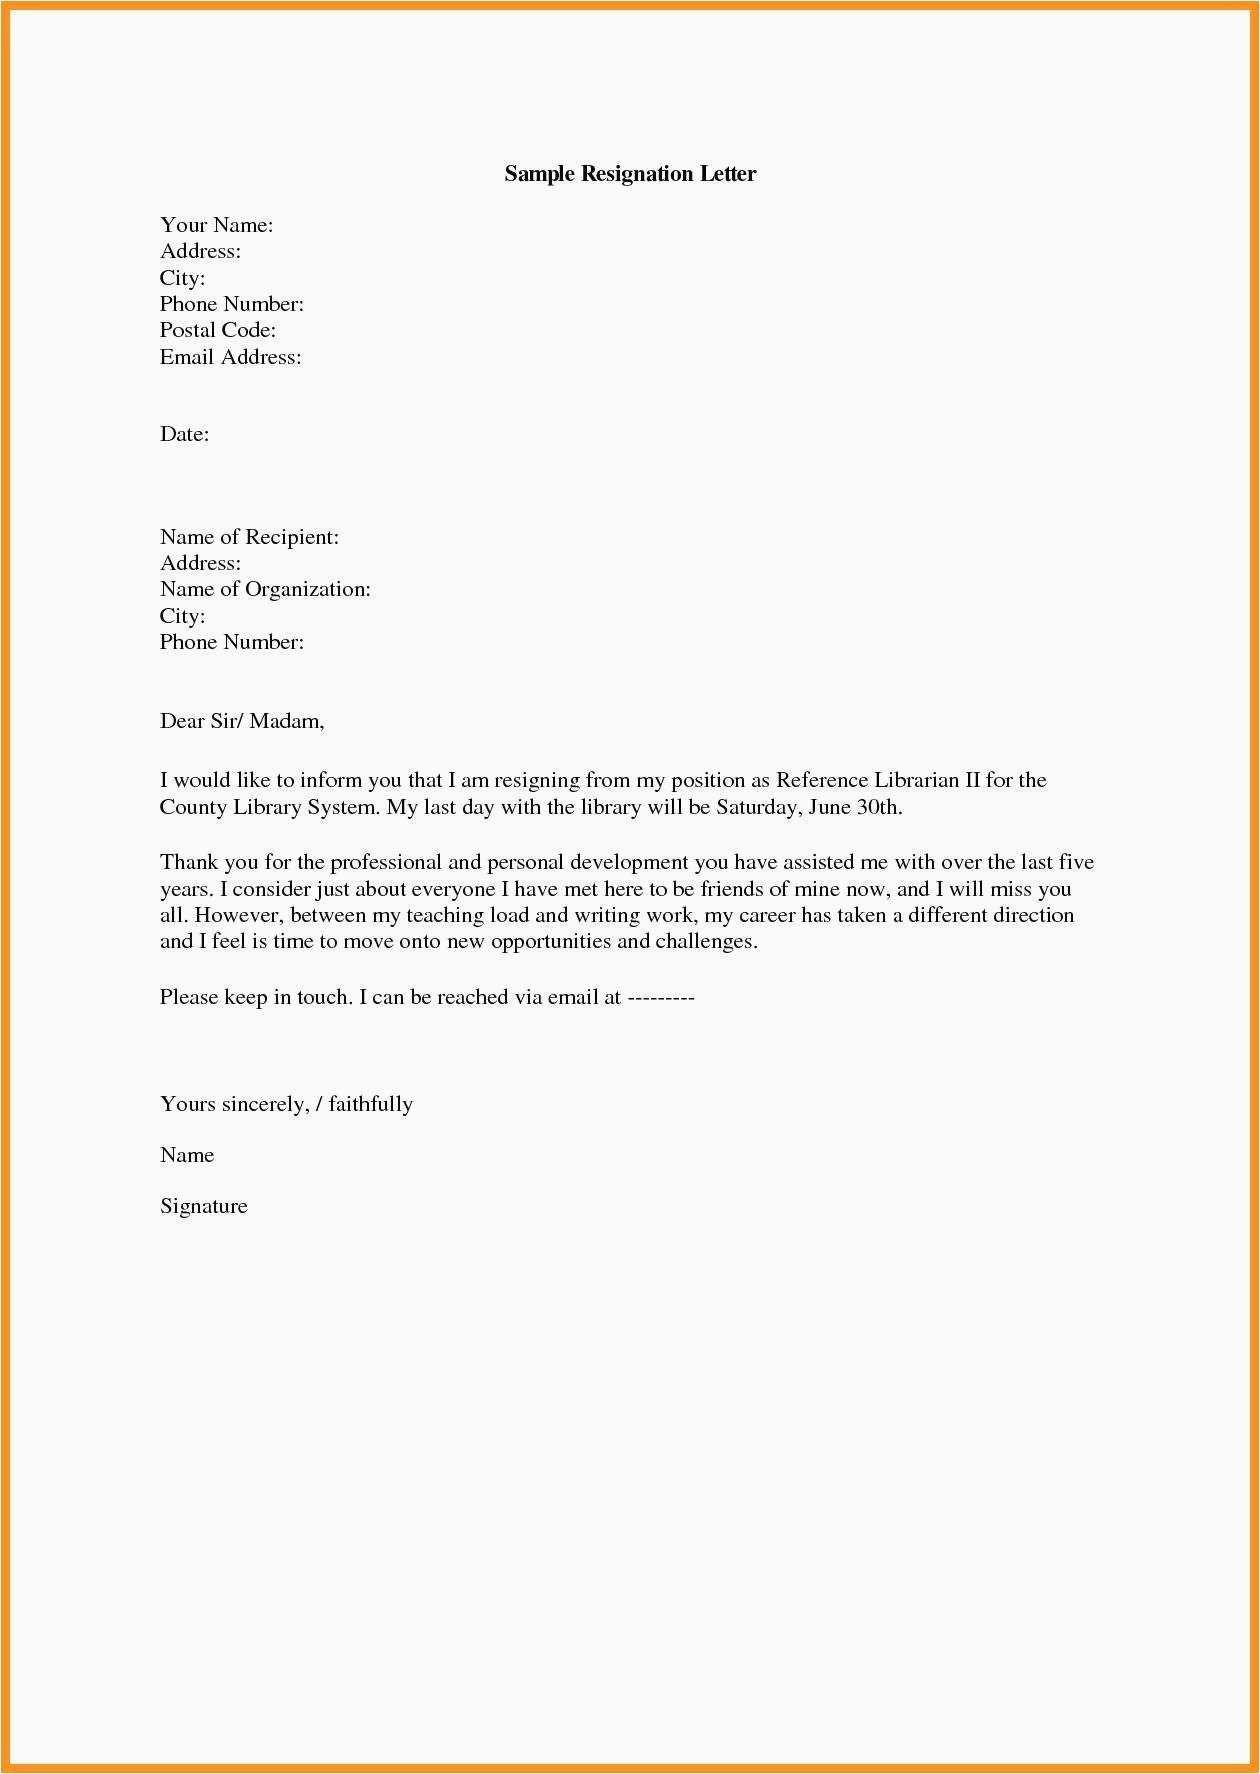 Leave You Job With Outstanding Resignation Letter Template In 2020